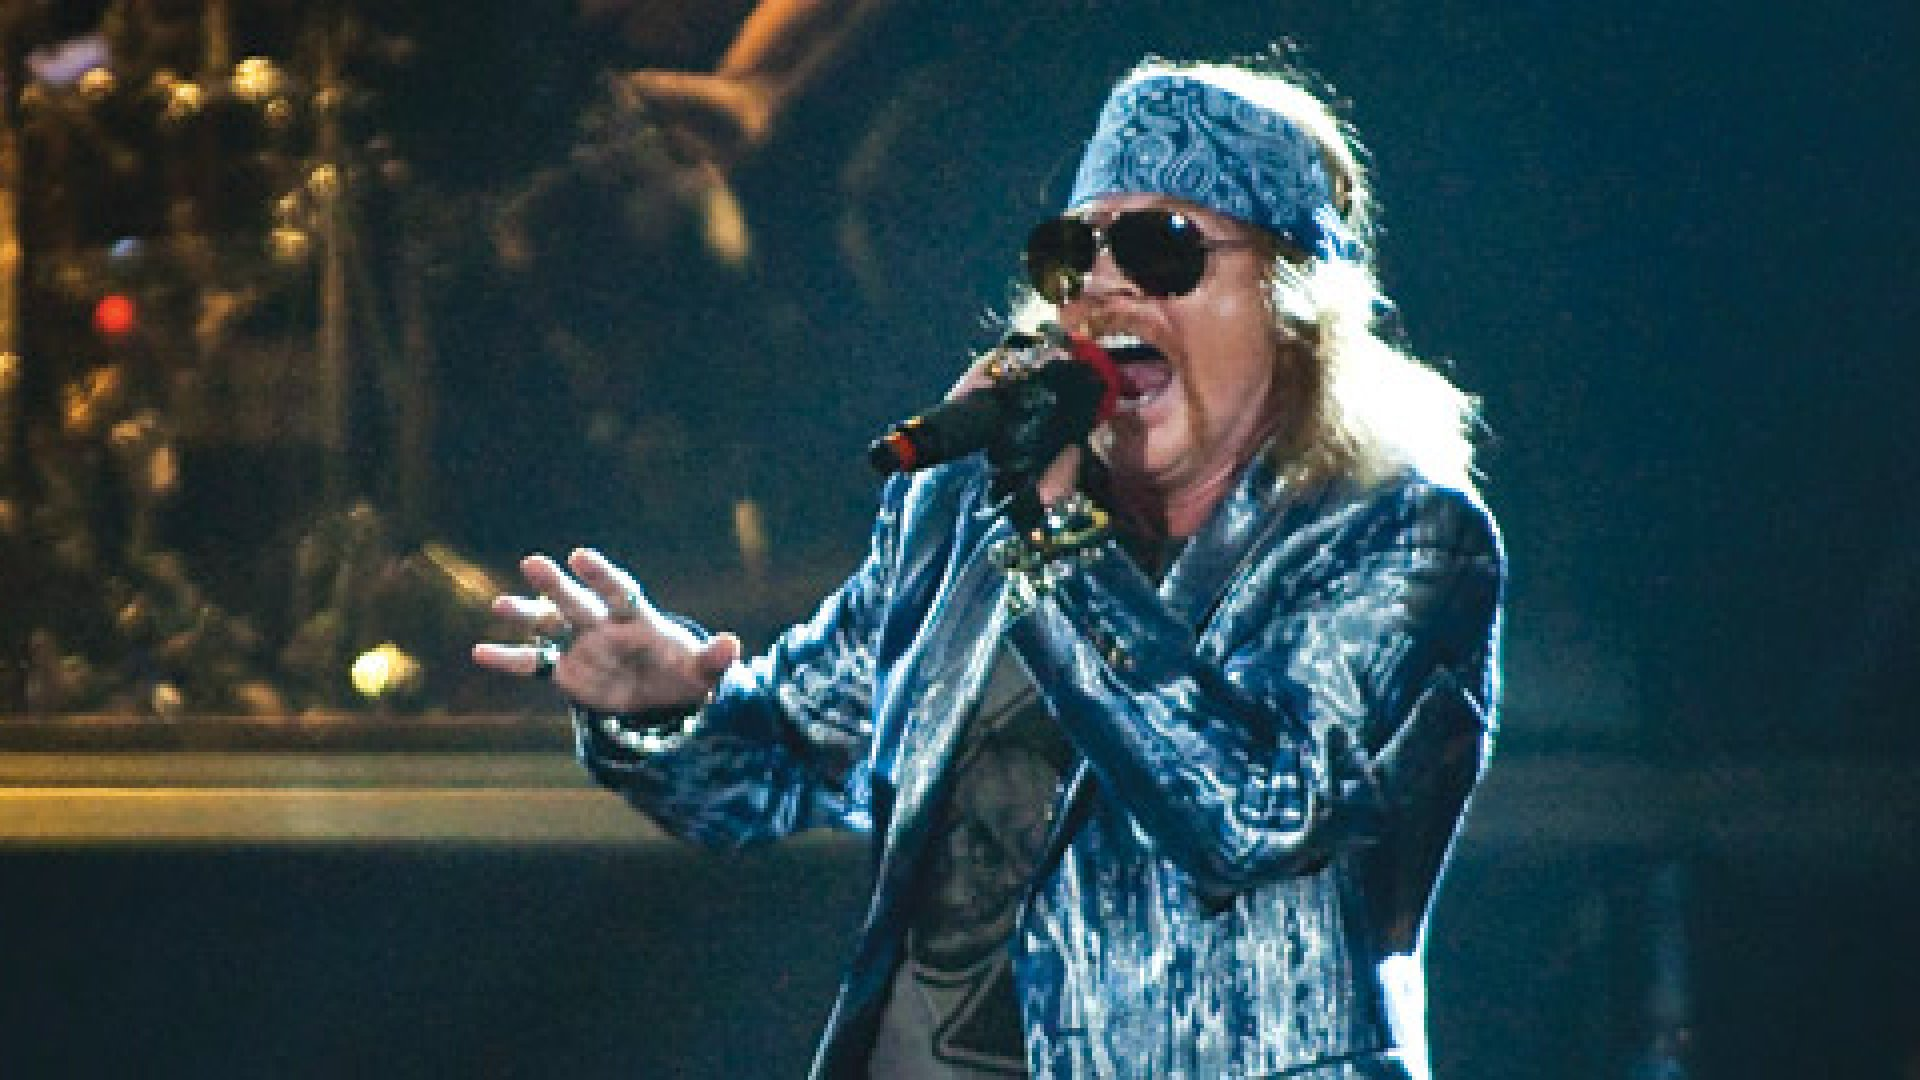 <Strong>Strate-strate-strate-gy-gy-gy!: </strong>Axl Rose of Guns N' Roses performs on stage on the opening night of the Chinese Democracy UK tour.